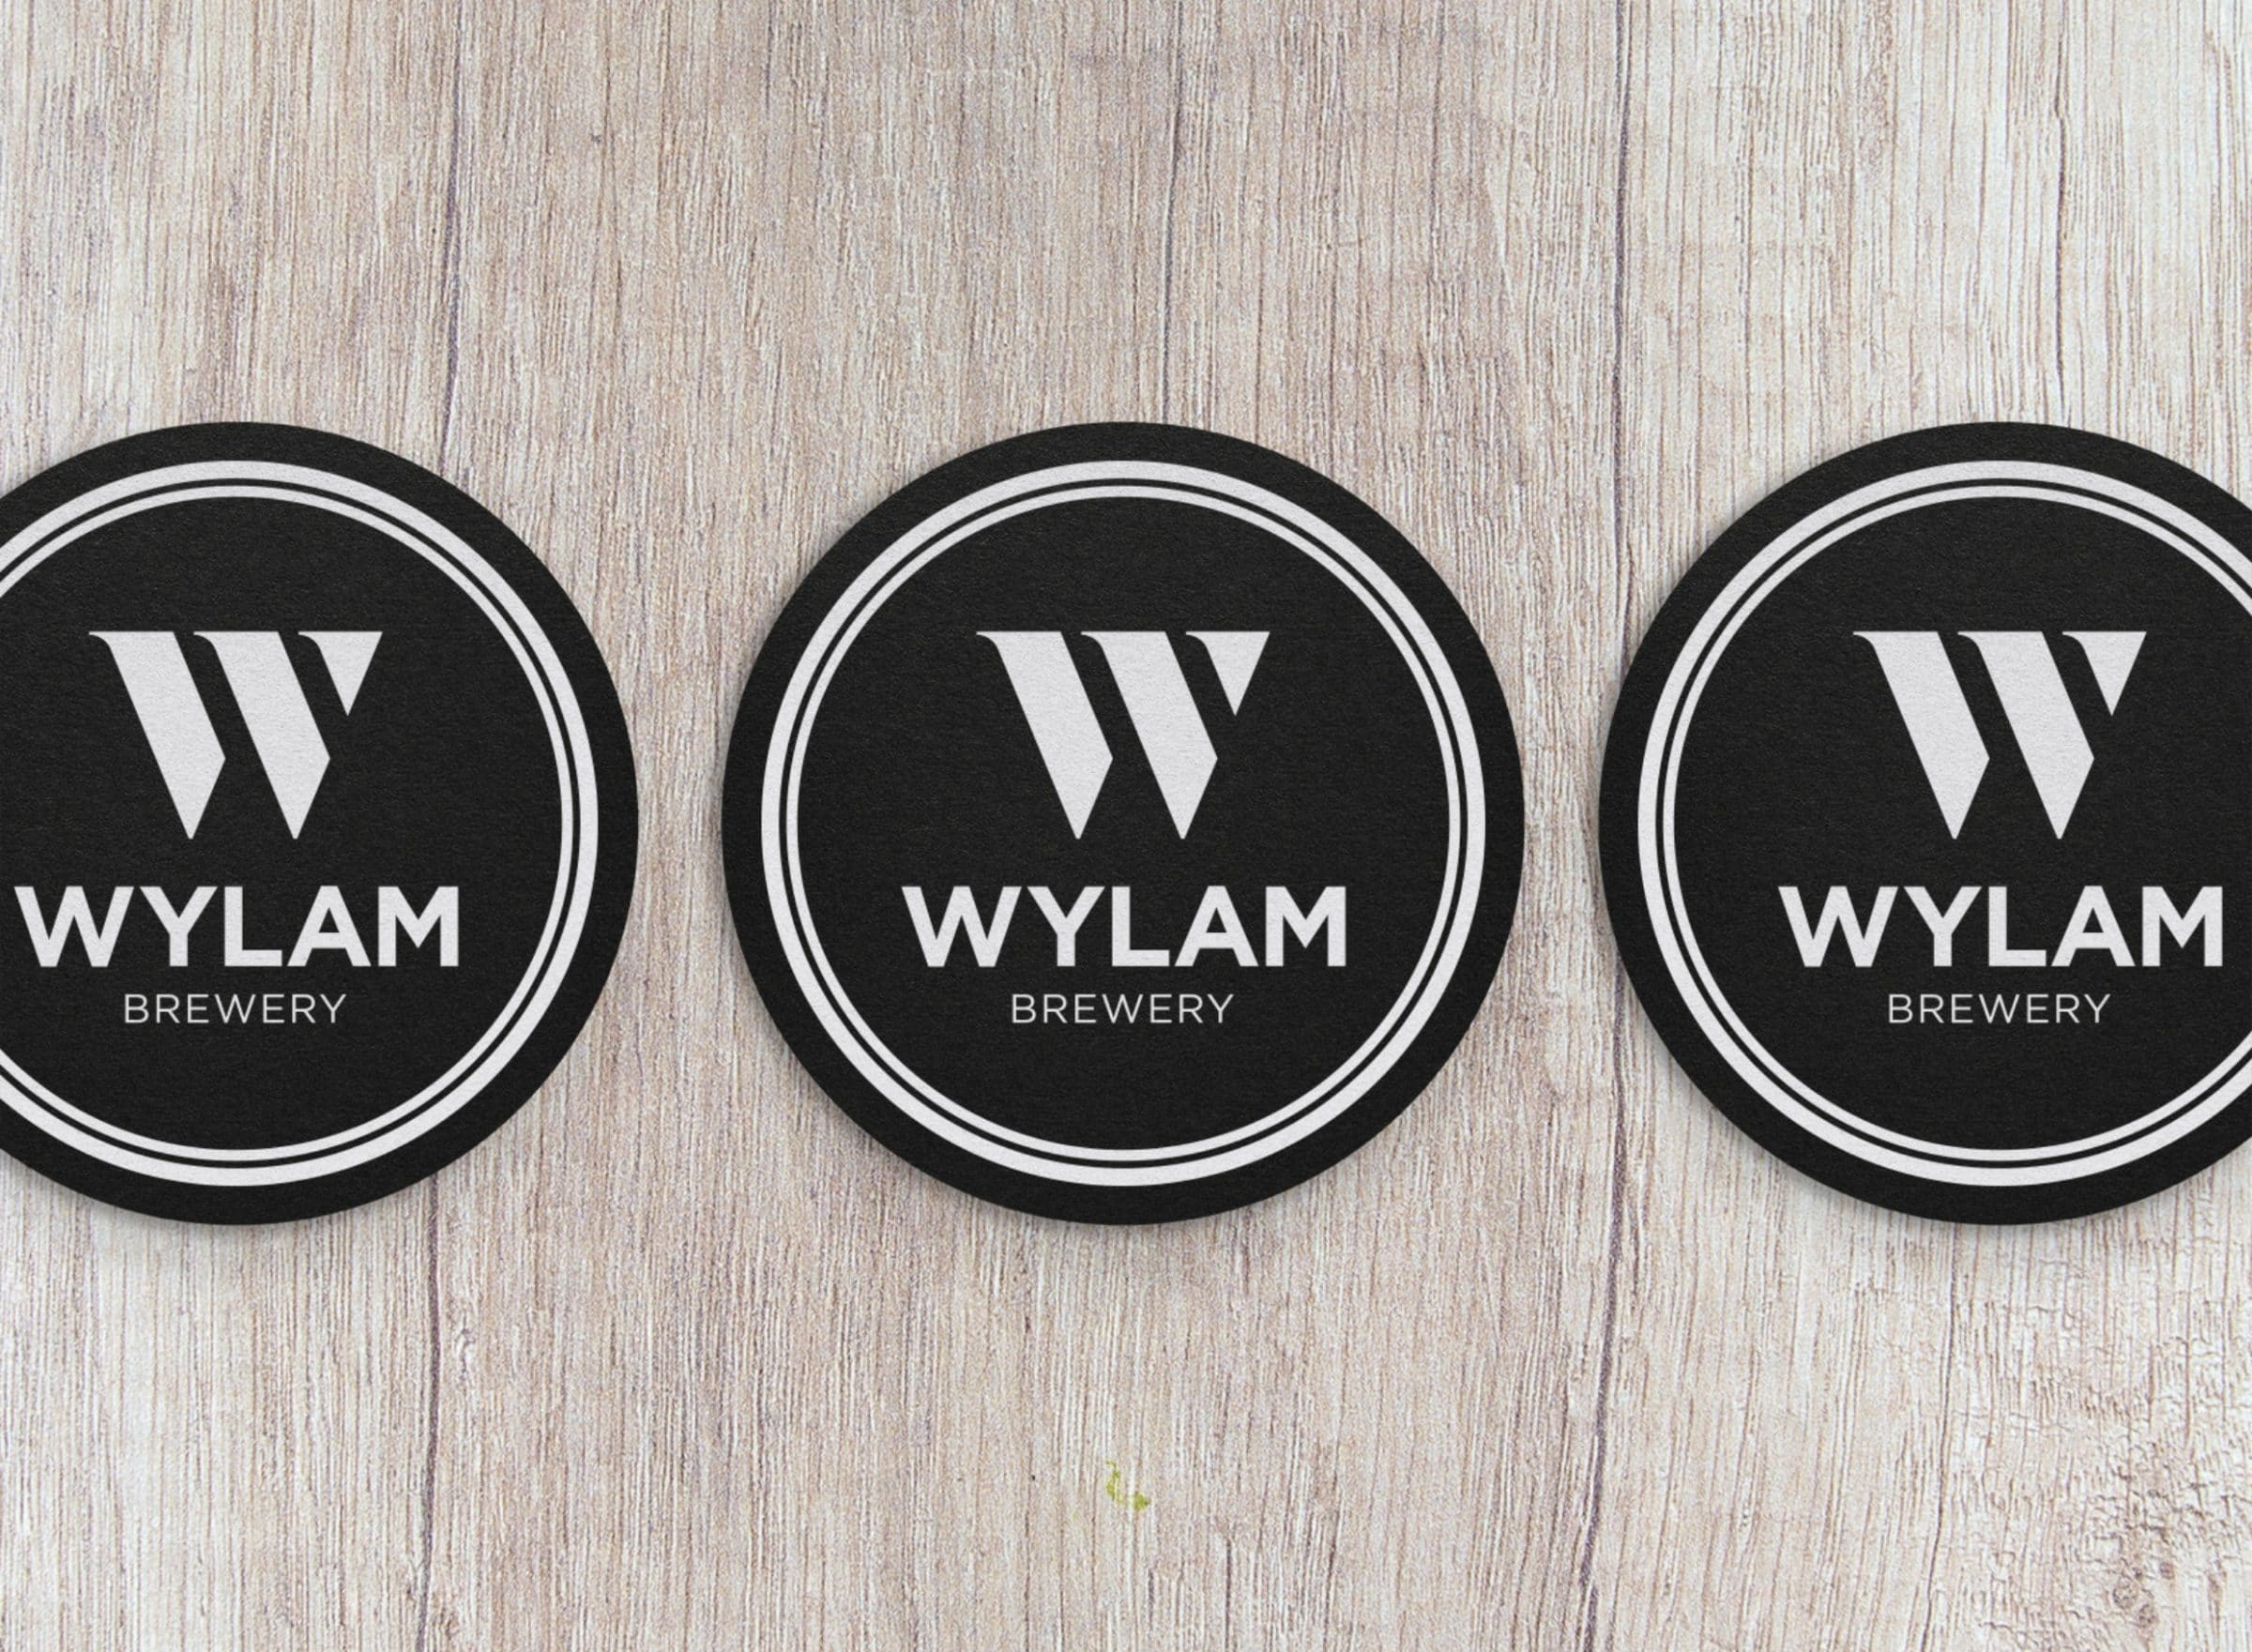 Logo design for Wylam Brewery on beer mats